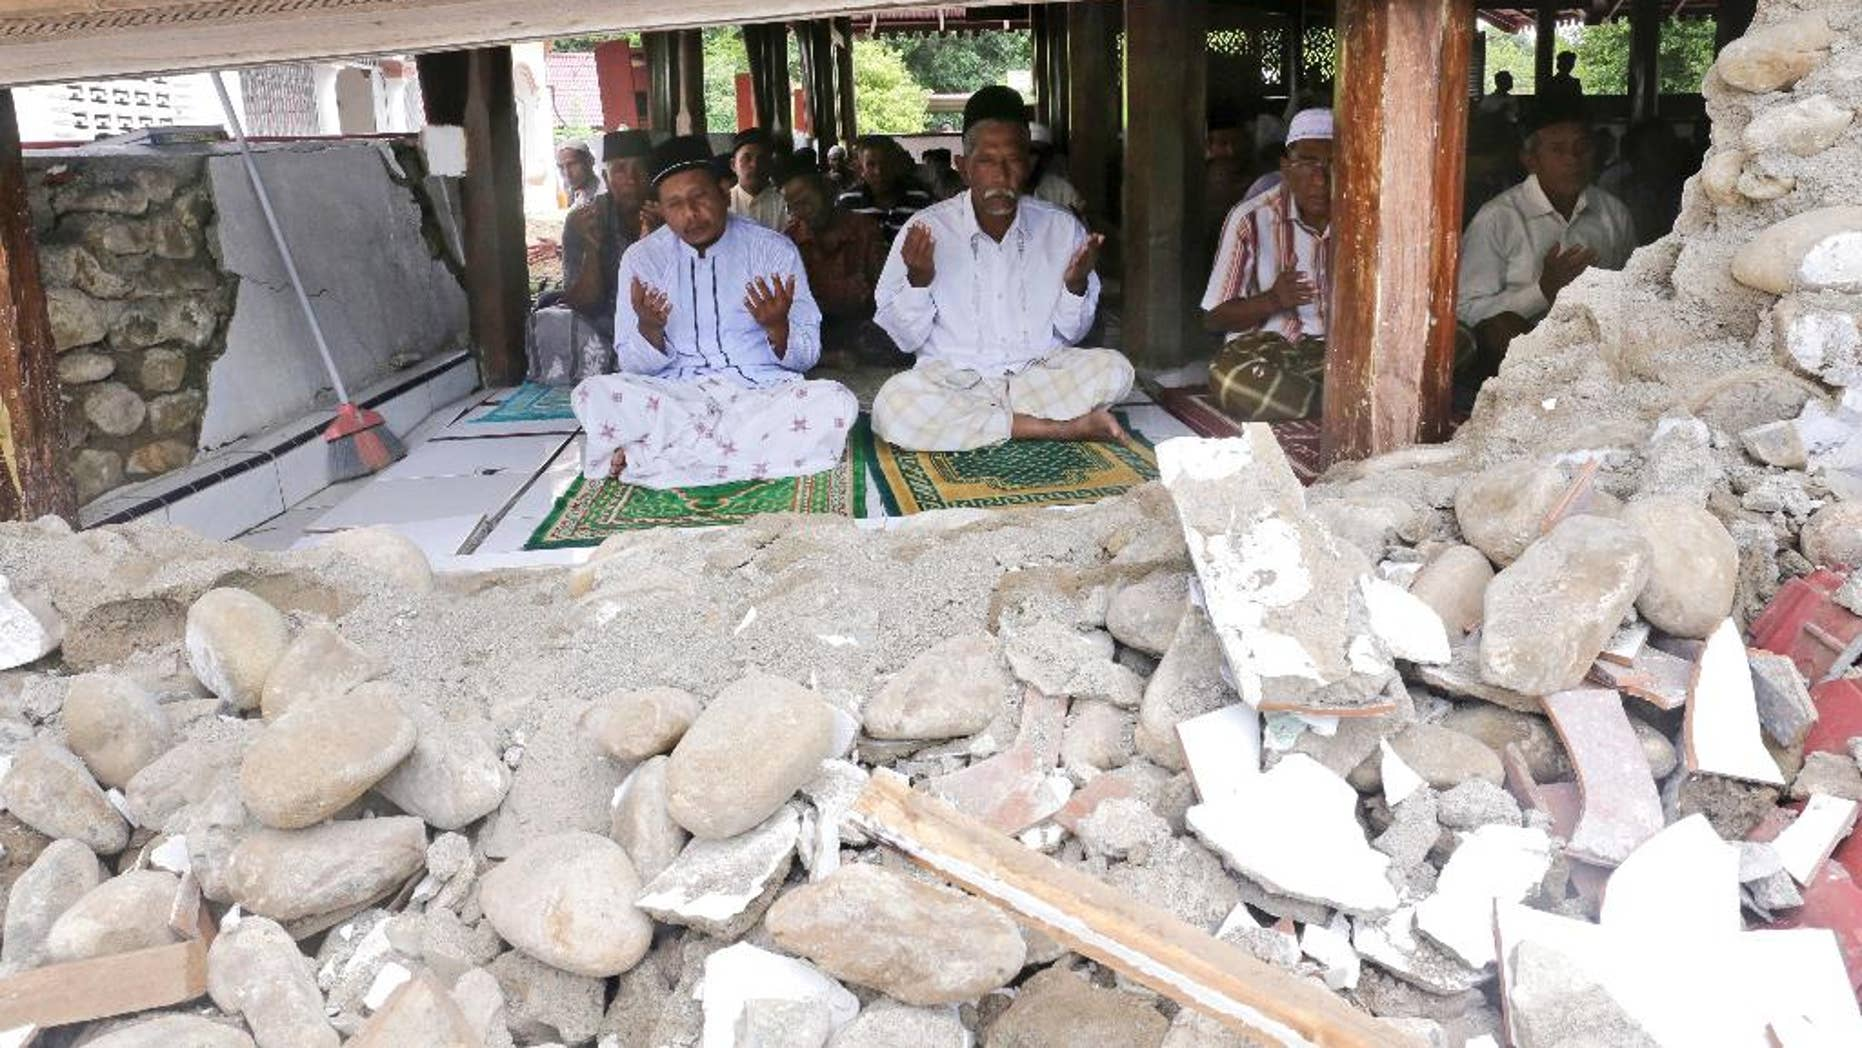 Survivors perform Friday prayer at a mosque badly damaged by Wednesday's earthquake in Pidie, Aceh province, Indonesia, Friday, Dec. 9, 2016. Over one hundred people were killed in the quake that hit the northeast of the province on Sumatra before dawn Wednesday. Hundreds of people were injured and thousands buildings destroyed or heavily damaged. (AP Photo/Heri Juanda)